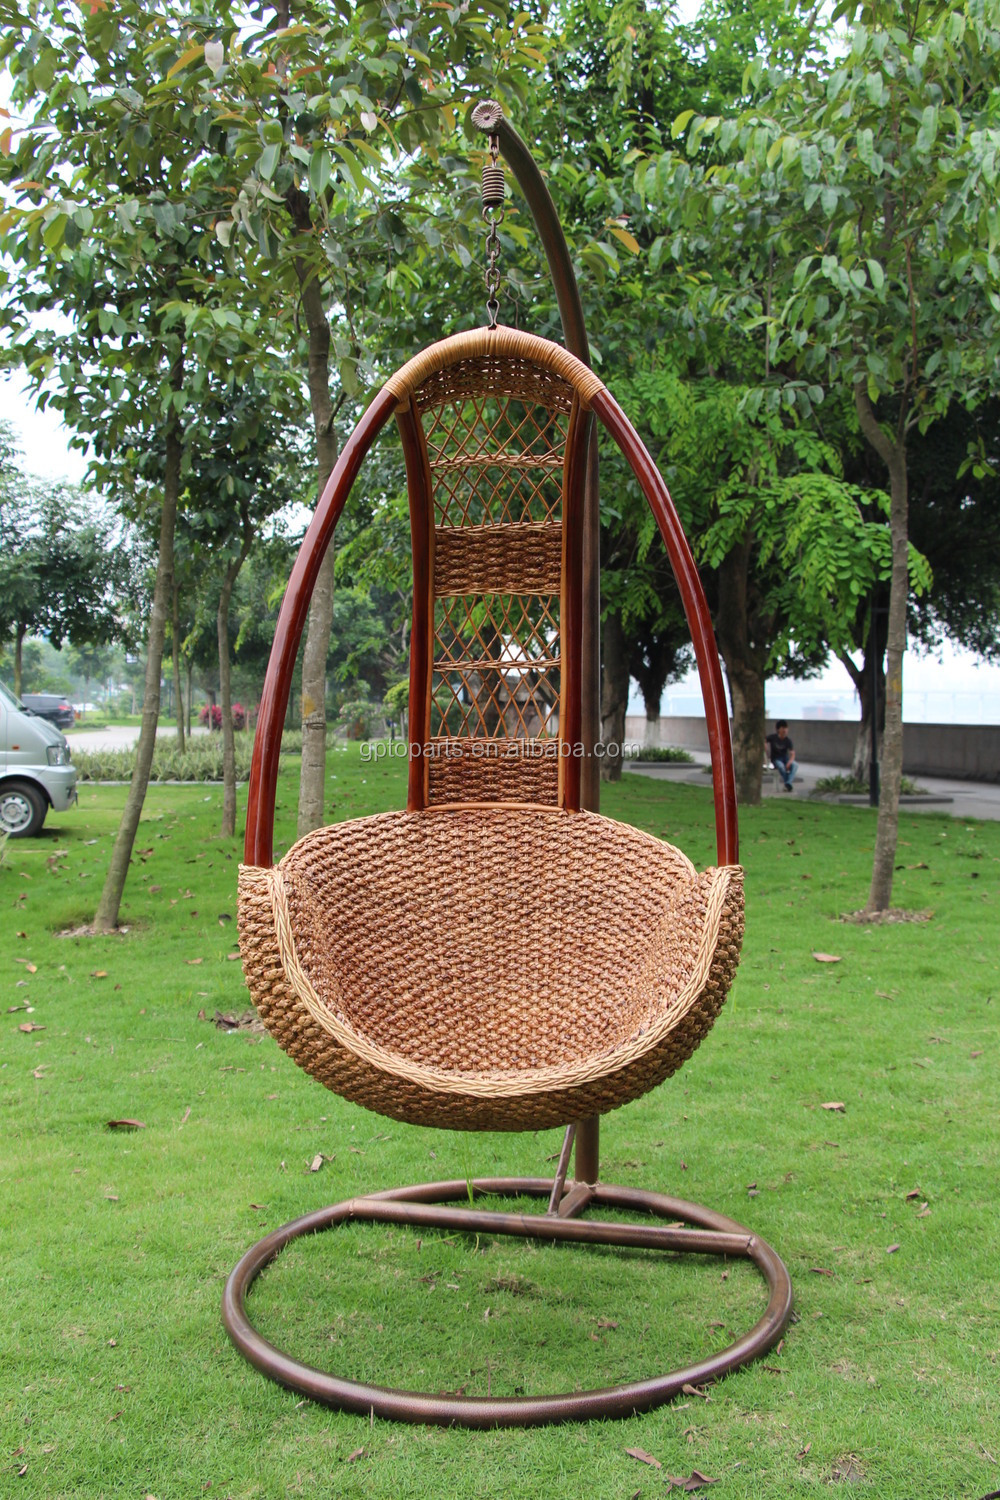 Retro Hanging Chair, Retro Hanging Chair Suppliers And Manufacturers At  Alibaba.com